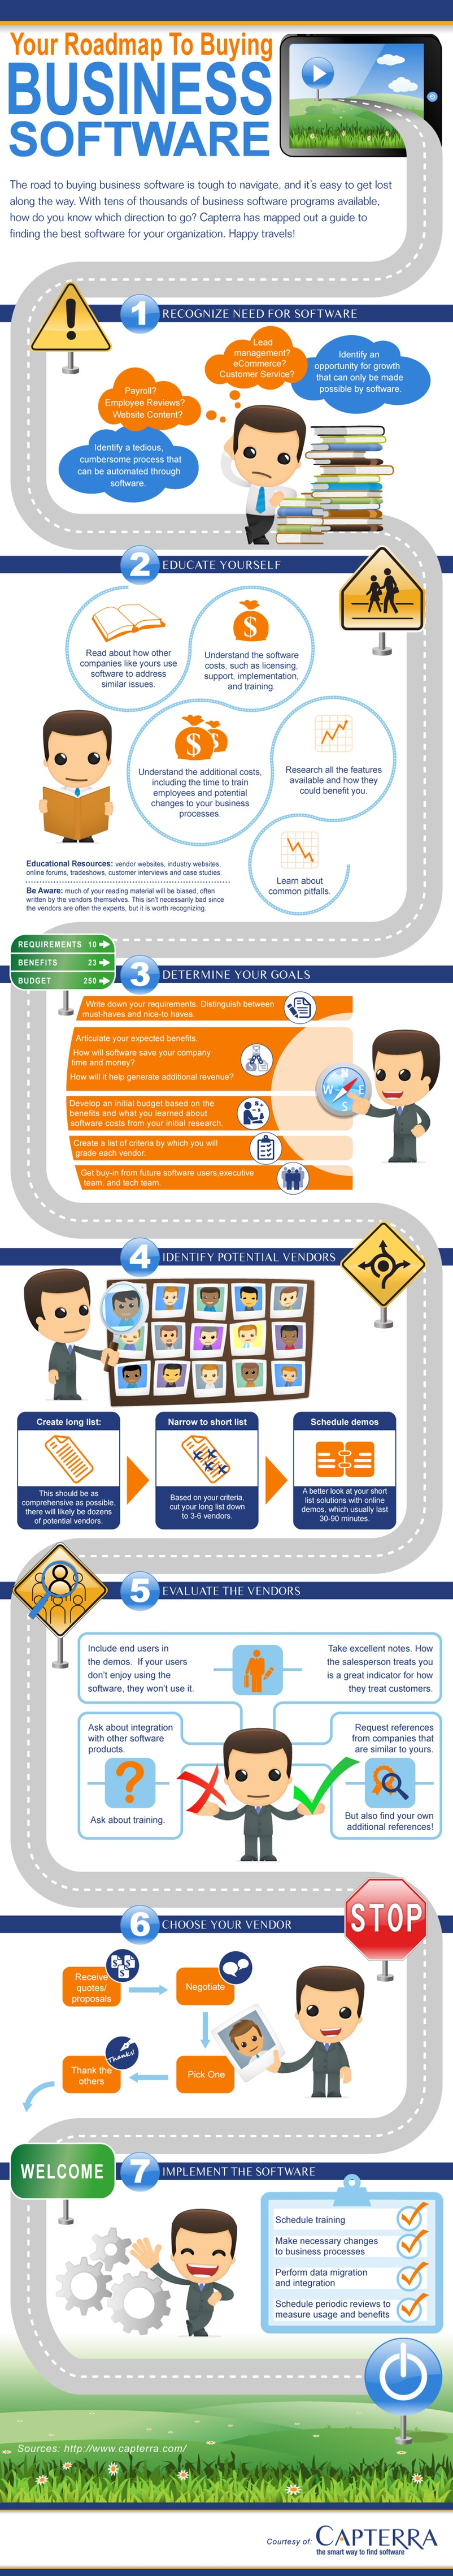 Roadmap-To-Buying-Business-Software-Infographic